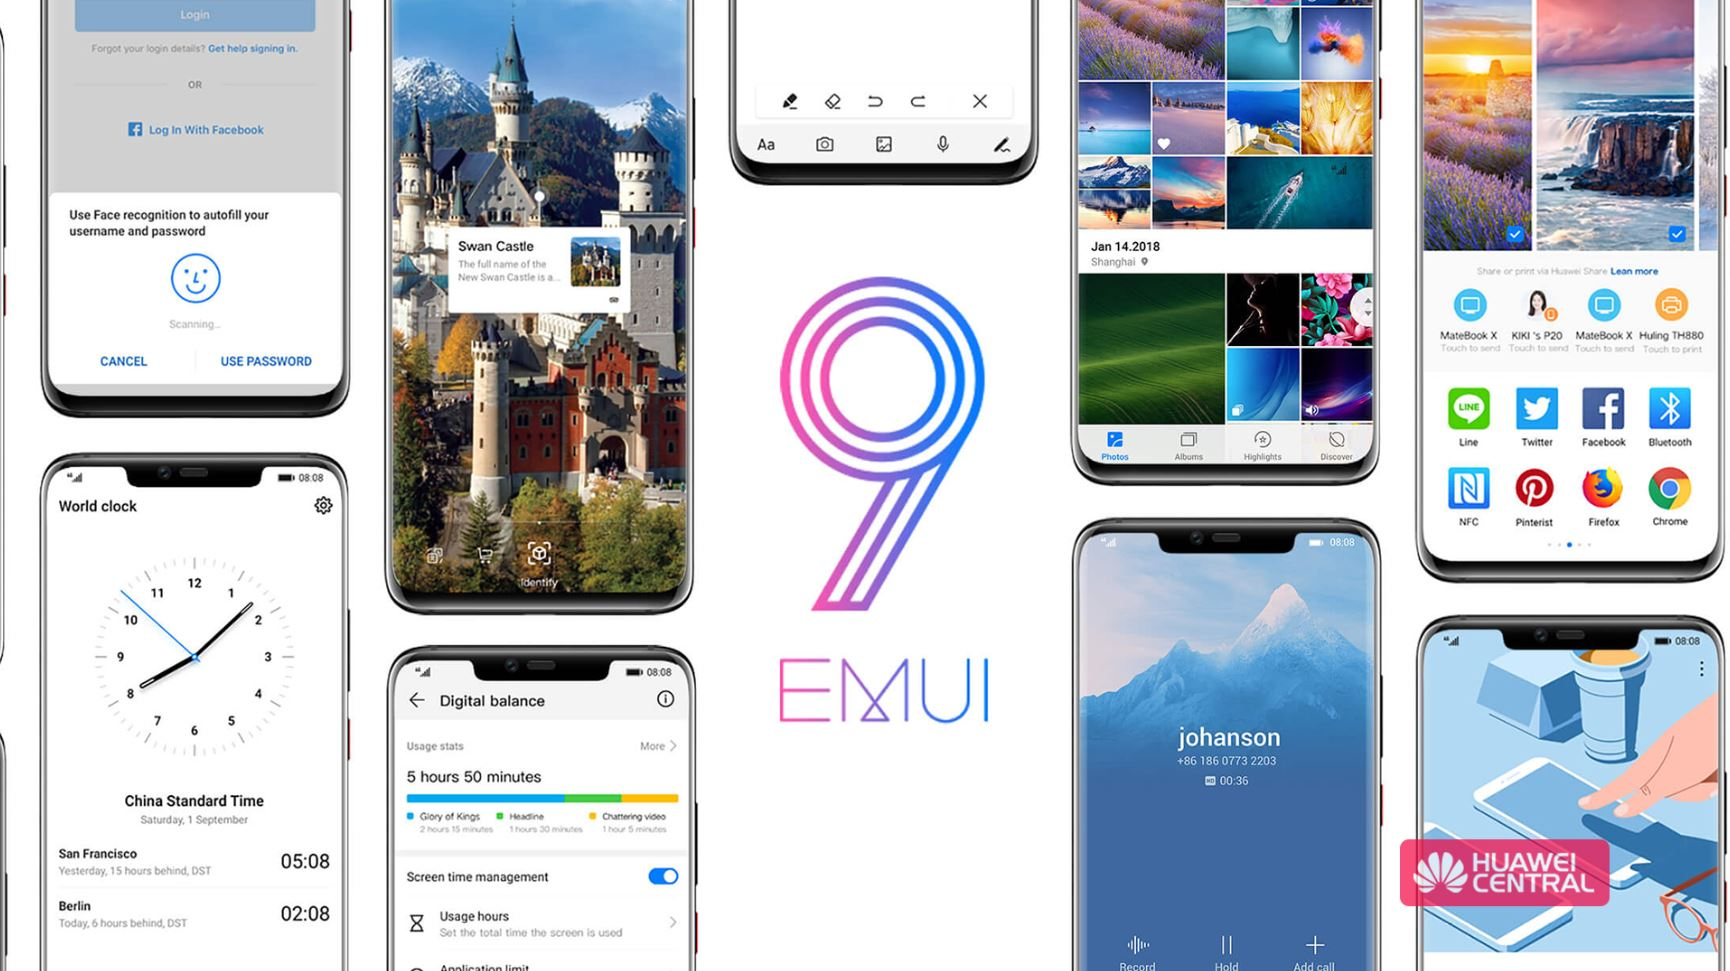 Huawei P20/P20 Pro and Mate 10/10 Pro EMUI 9 0 update now